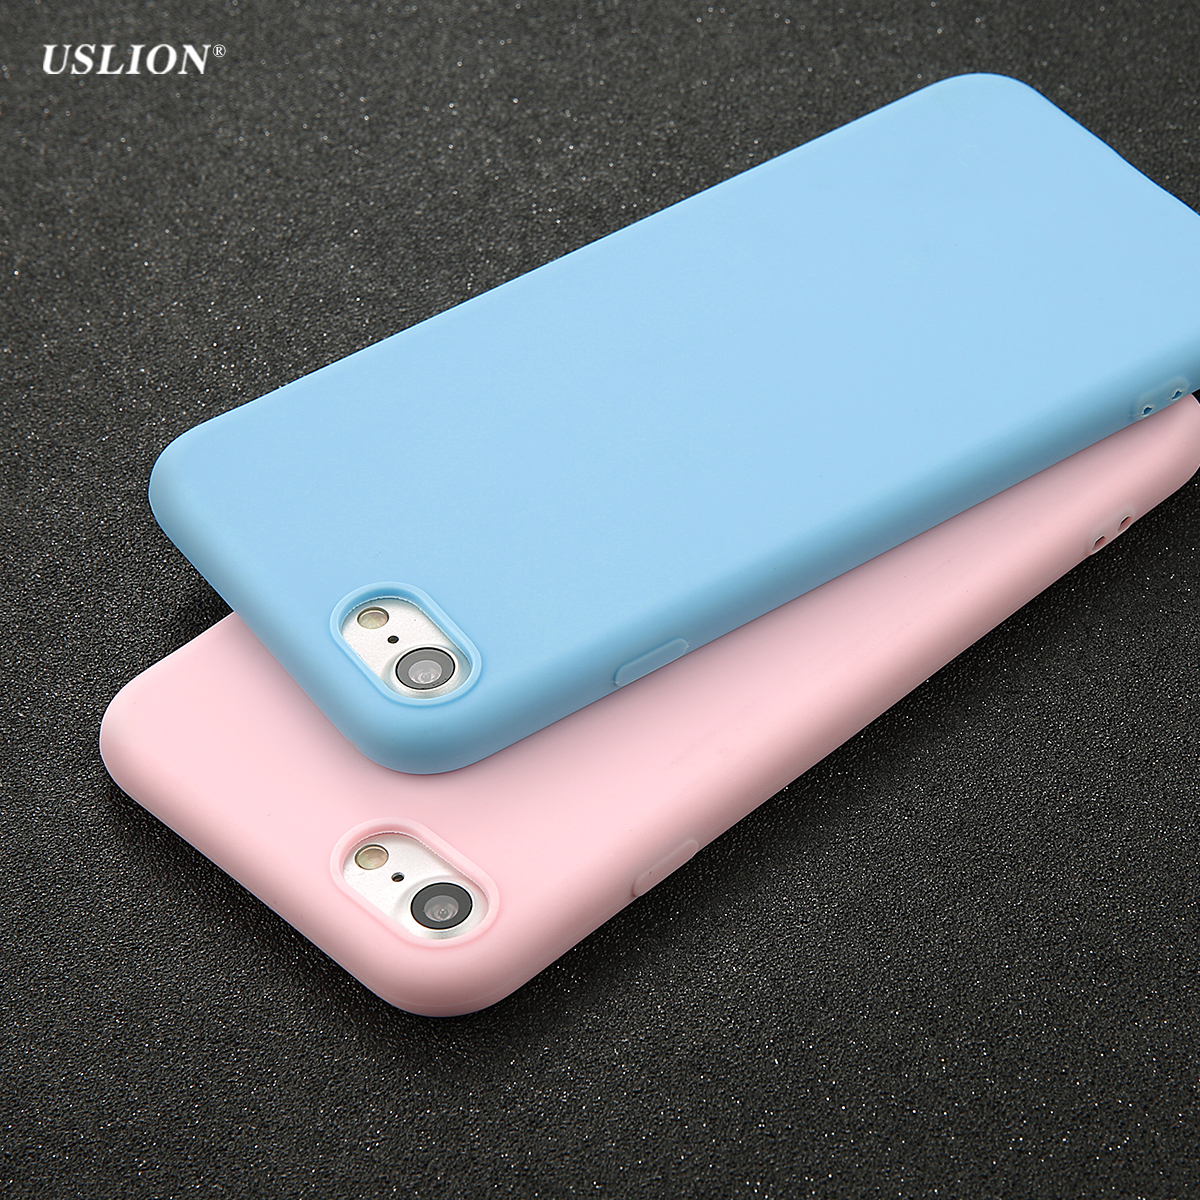 USLION Phone Case For iPhone 7 6 6s Plus 5 5s SE Simple Solid Color Ultrathin Soft TPU Cases Fashion Candy Color Ba